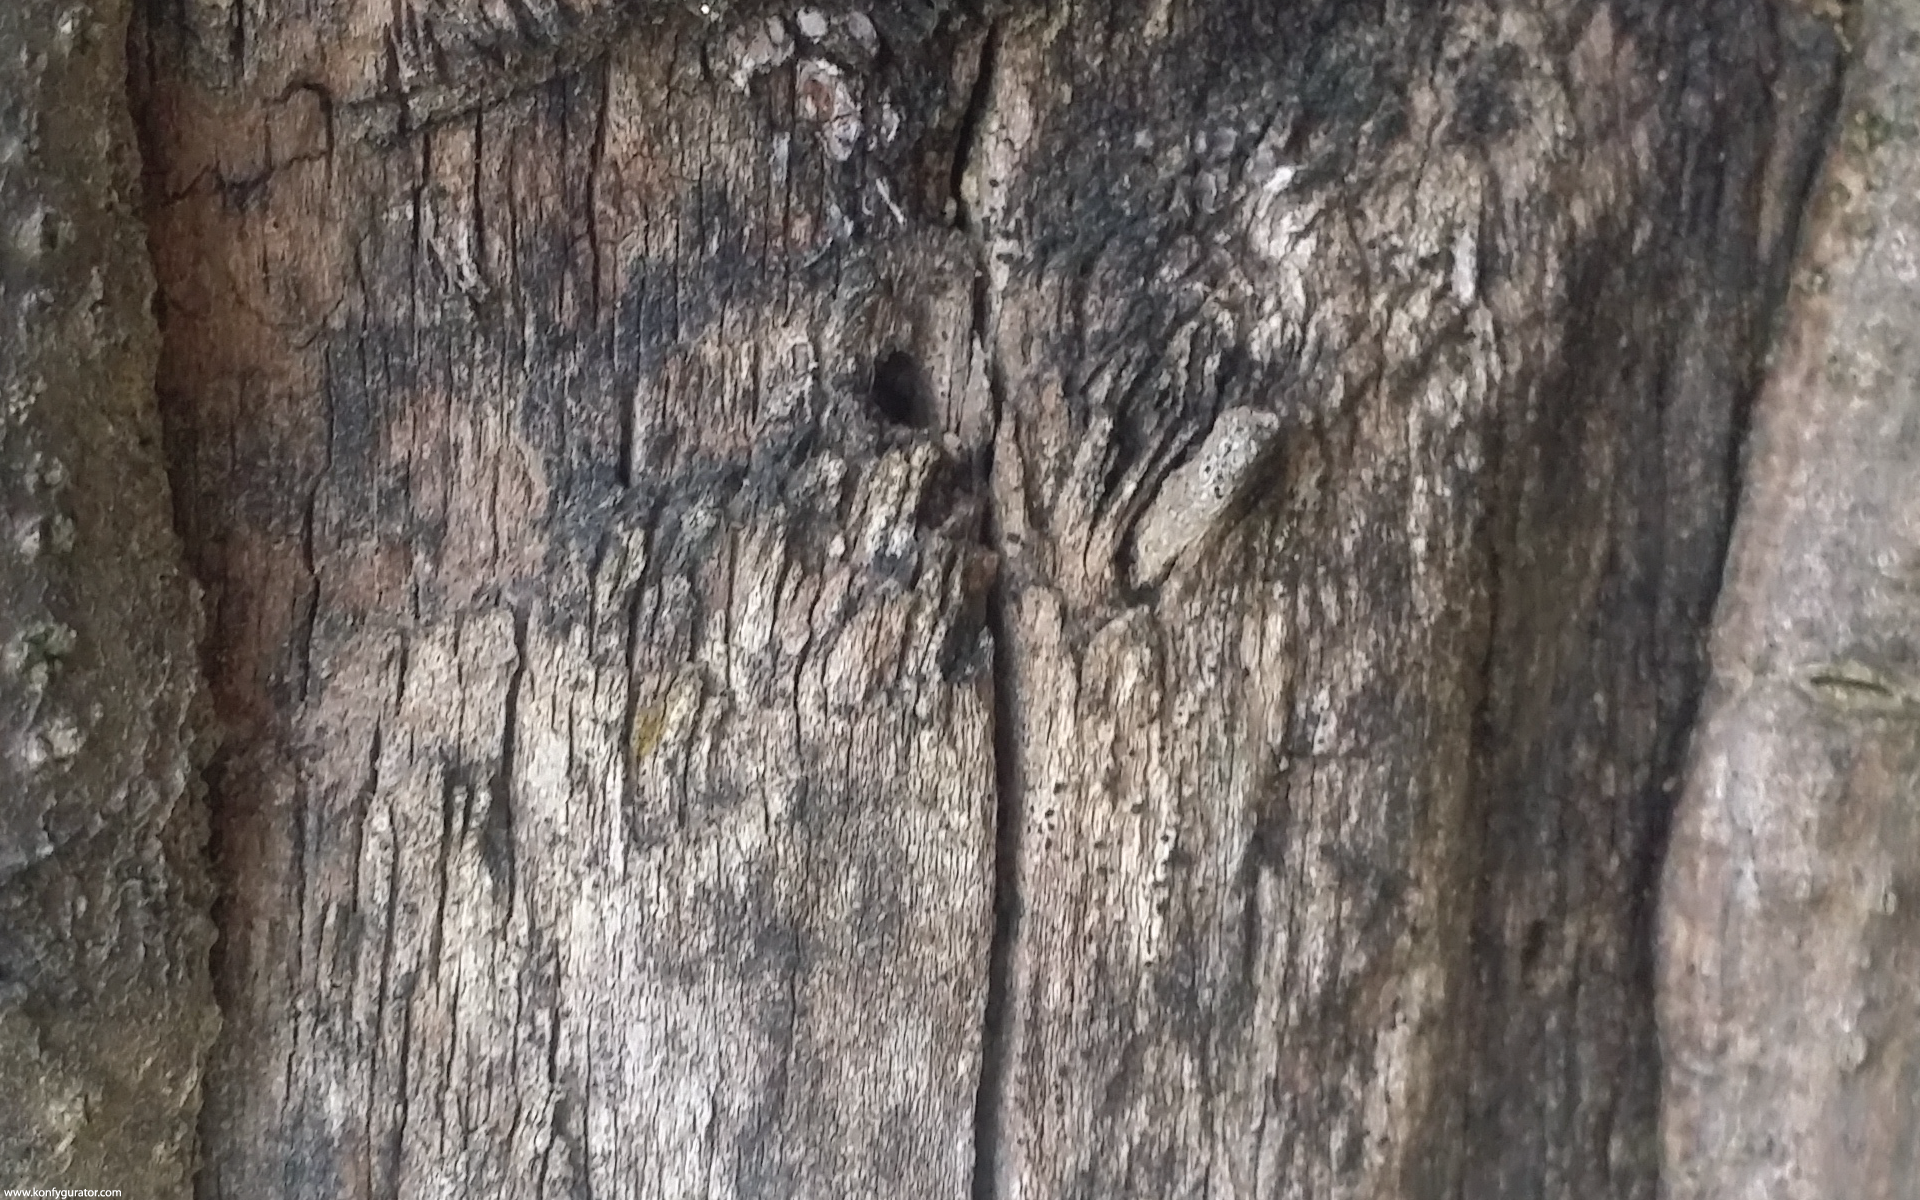 HD Wallpapers - Textures - depression, wood, old